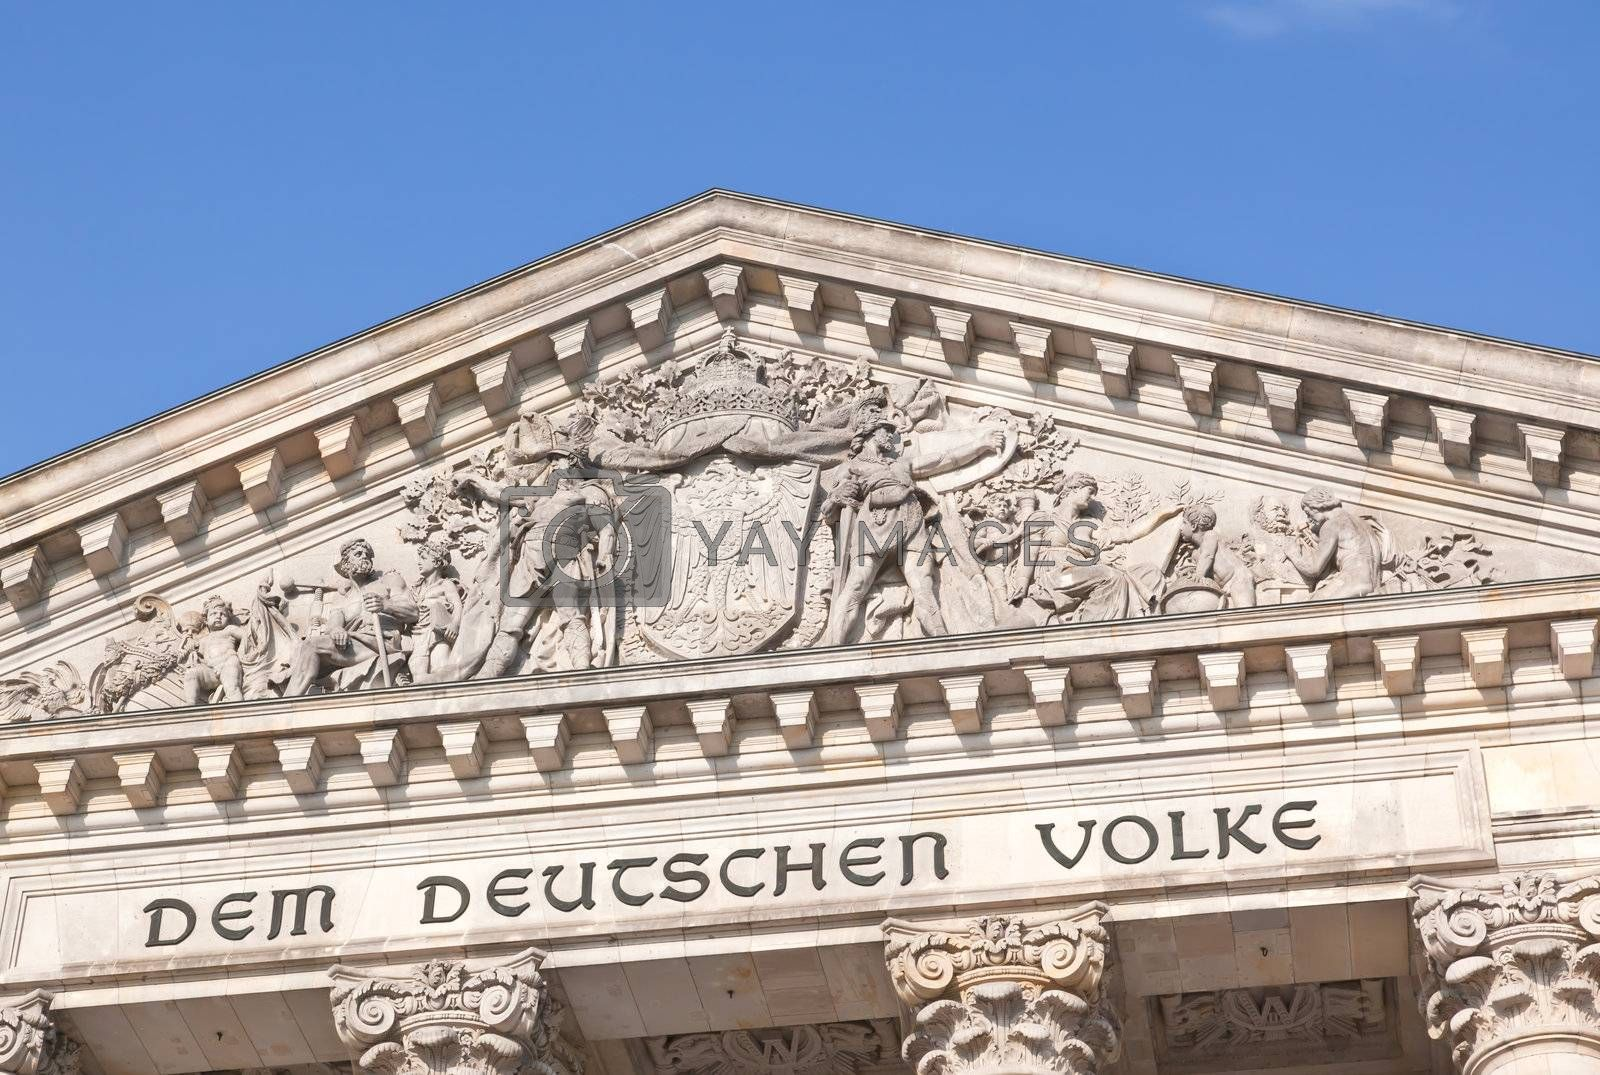 The Reichstag building in Berlin City Germany